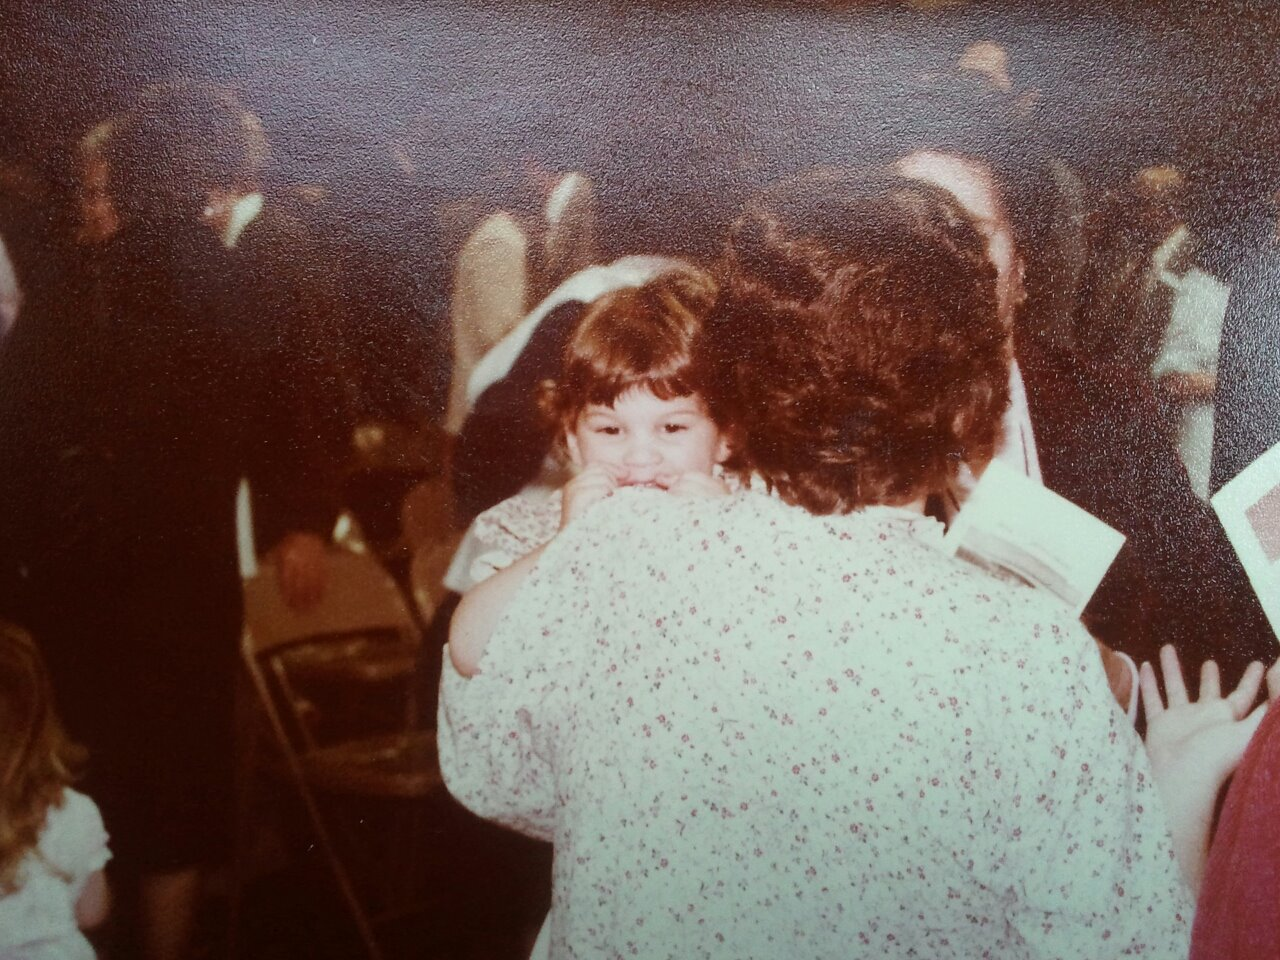 This moment matters to me.  That is me as a young girl being held by my mom.  I love it beacuse even though it's the back of her head, her hand gesture says it all to me and reminds me that she loved friends and a good conversation.  I don't know who took this photograph and it's a small miracle that I have it, but I am so very glad they did!  My mother passed away in 2001.